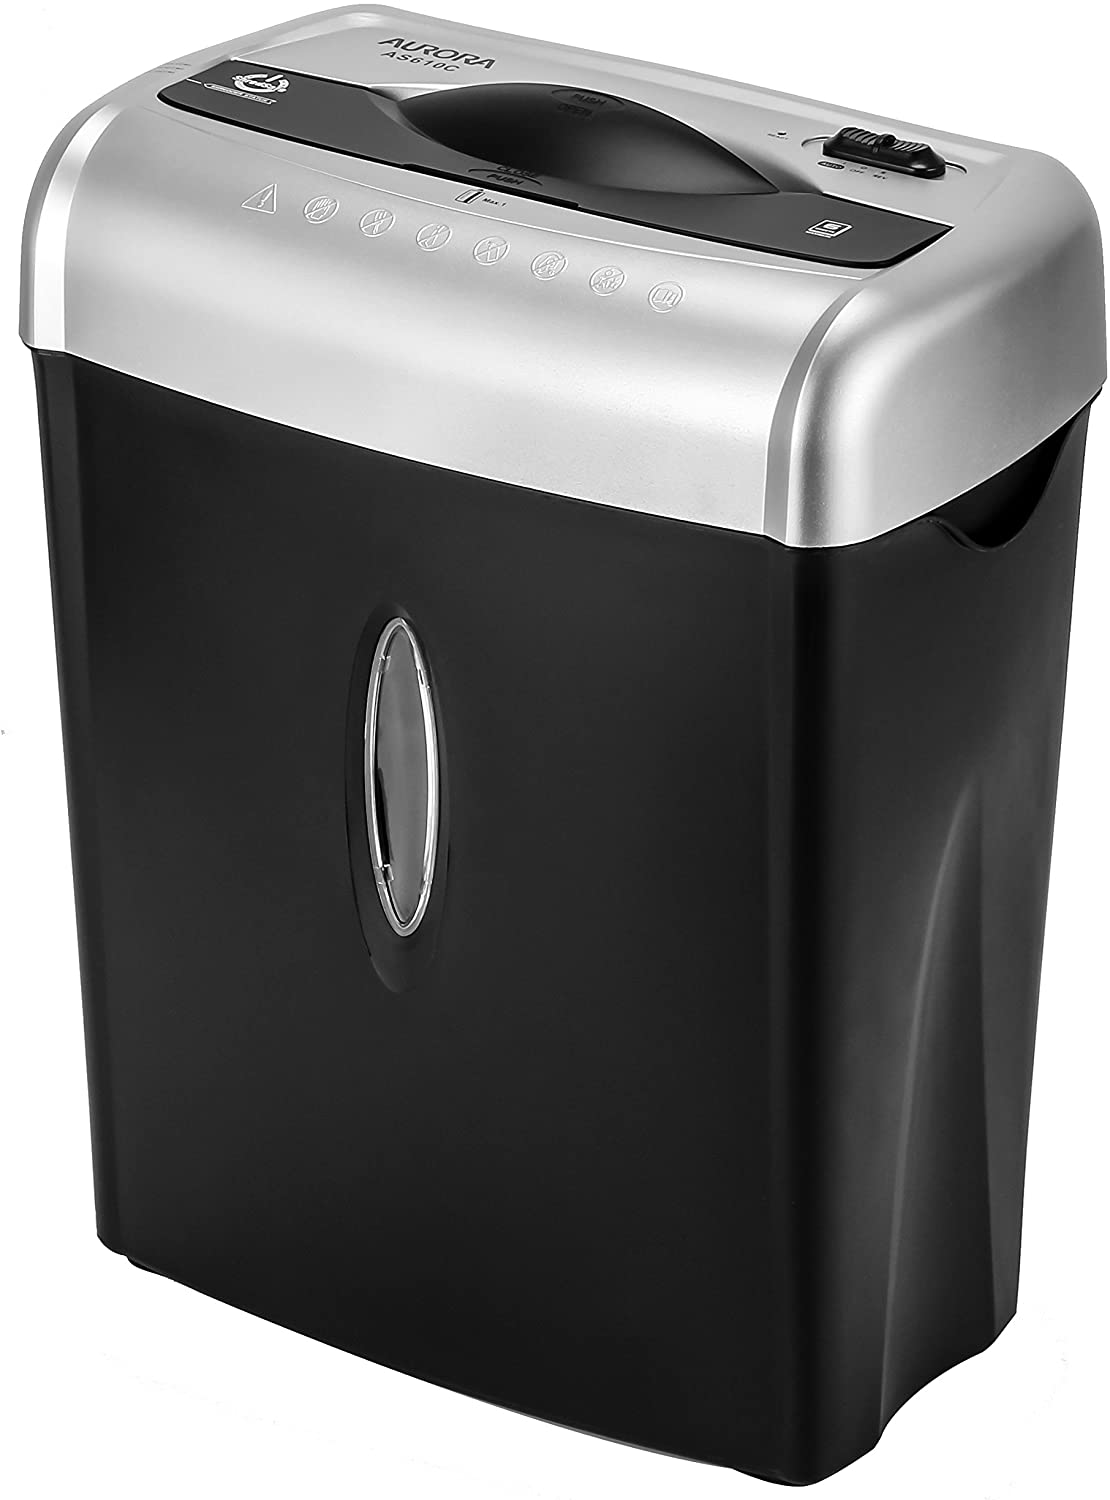 Aurora AS610C 6 Sheet Cross-Cut Shredder with Waste Bin uk reviews